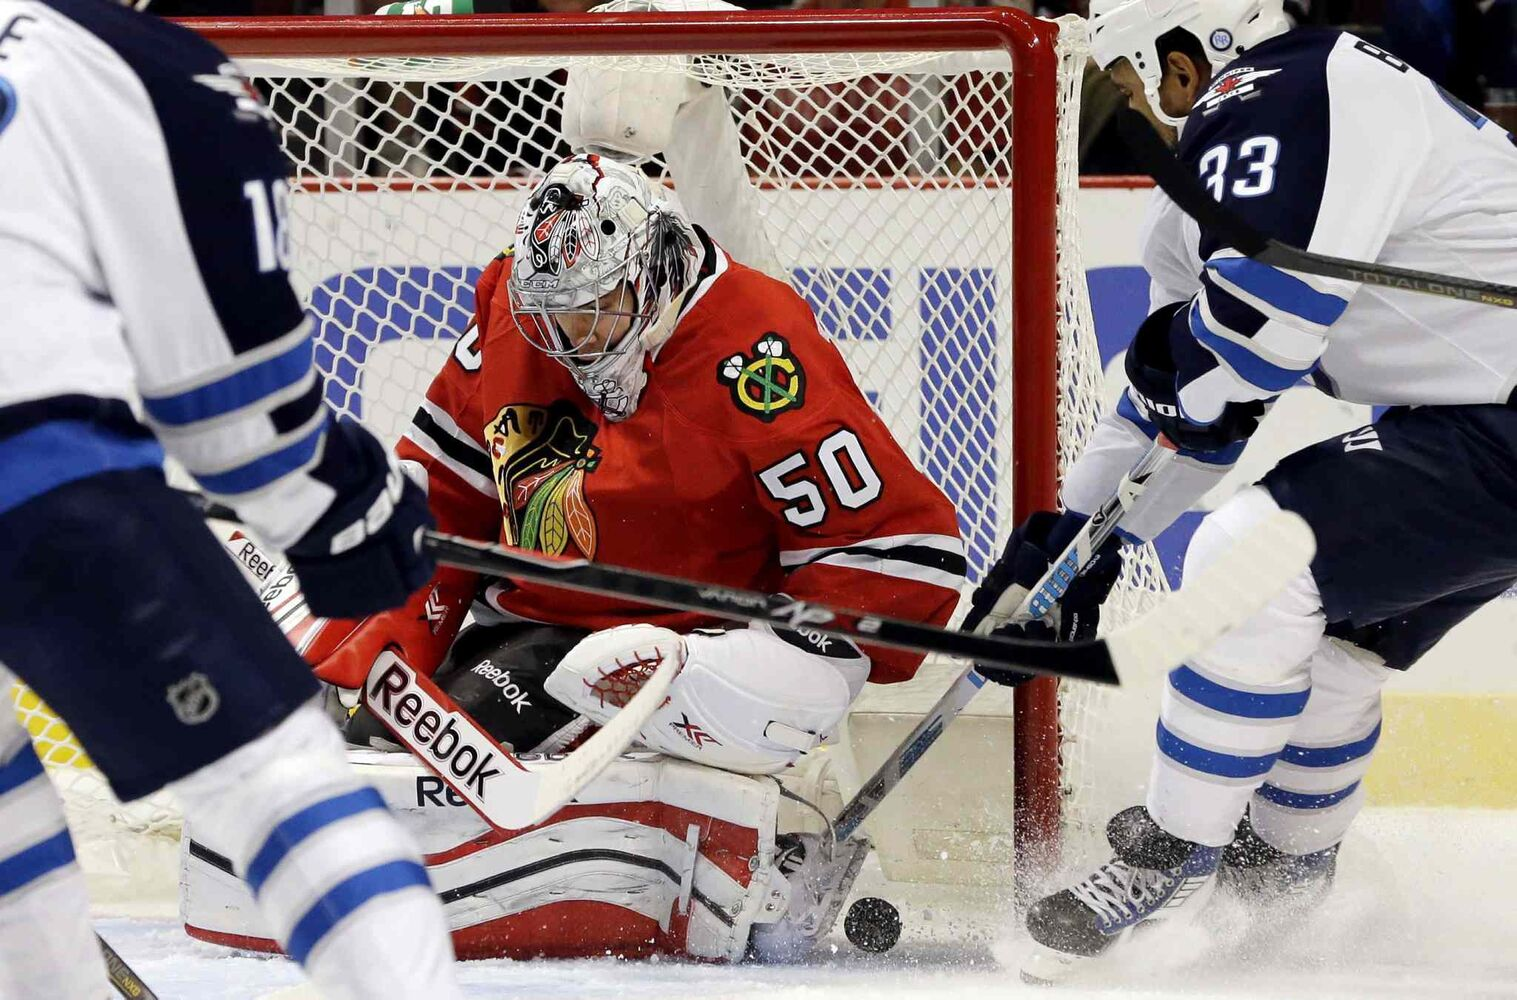 Chicago Blackhawks goalie Corey Crawford (50) saves a shot by Winnipeg Jets defenceman Dustin Byfuglien (33) during the first period.